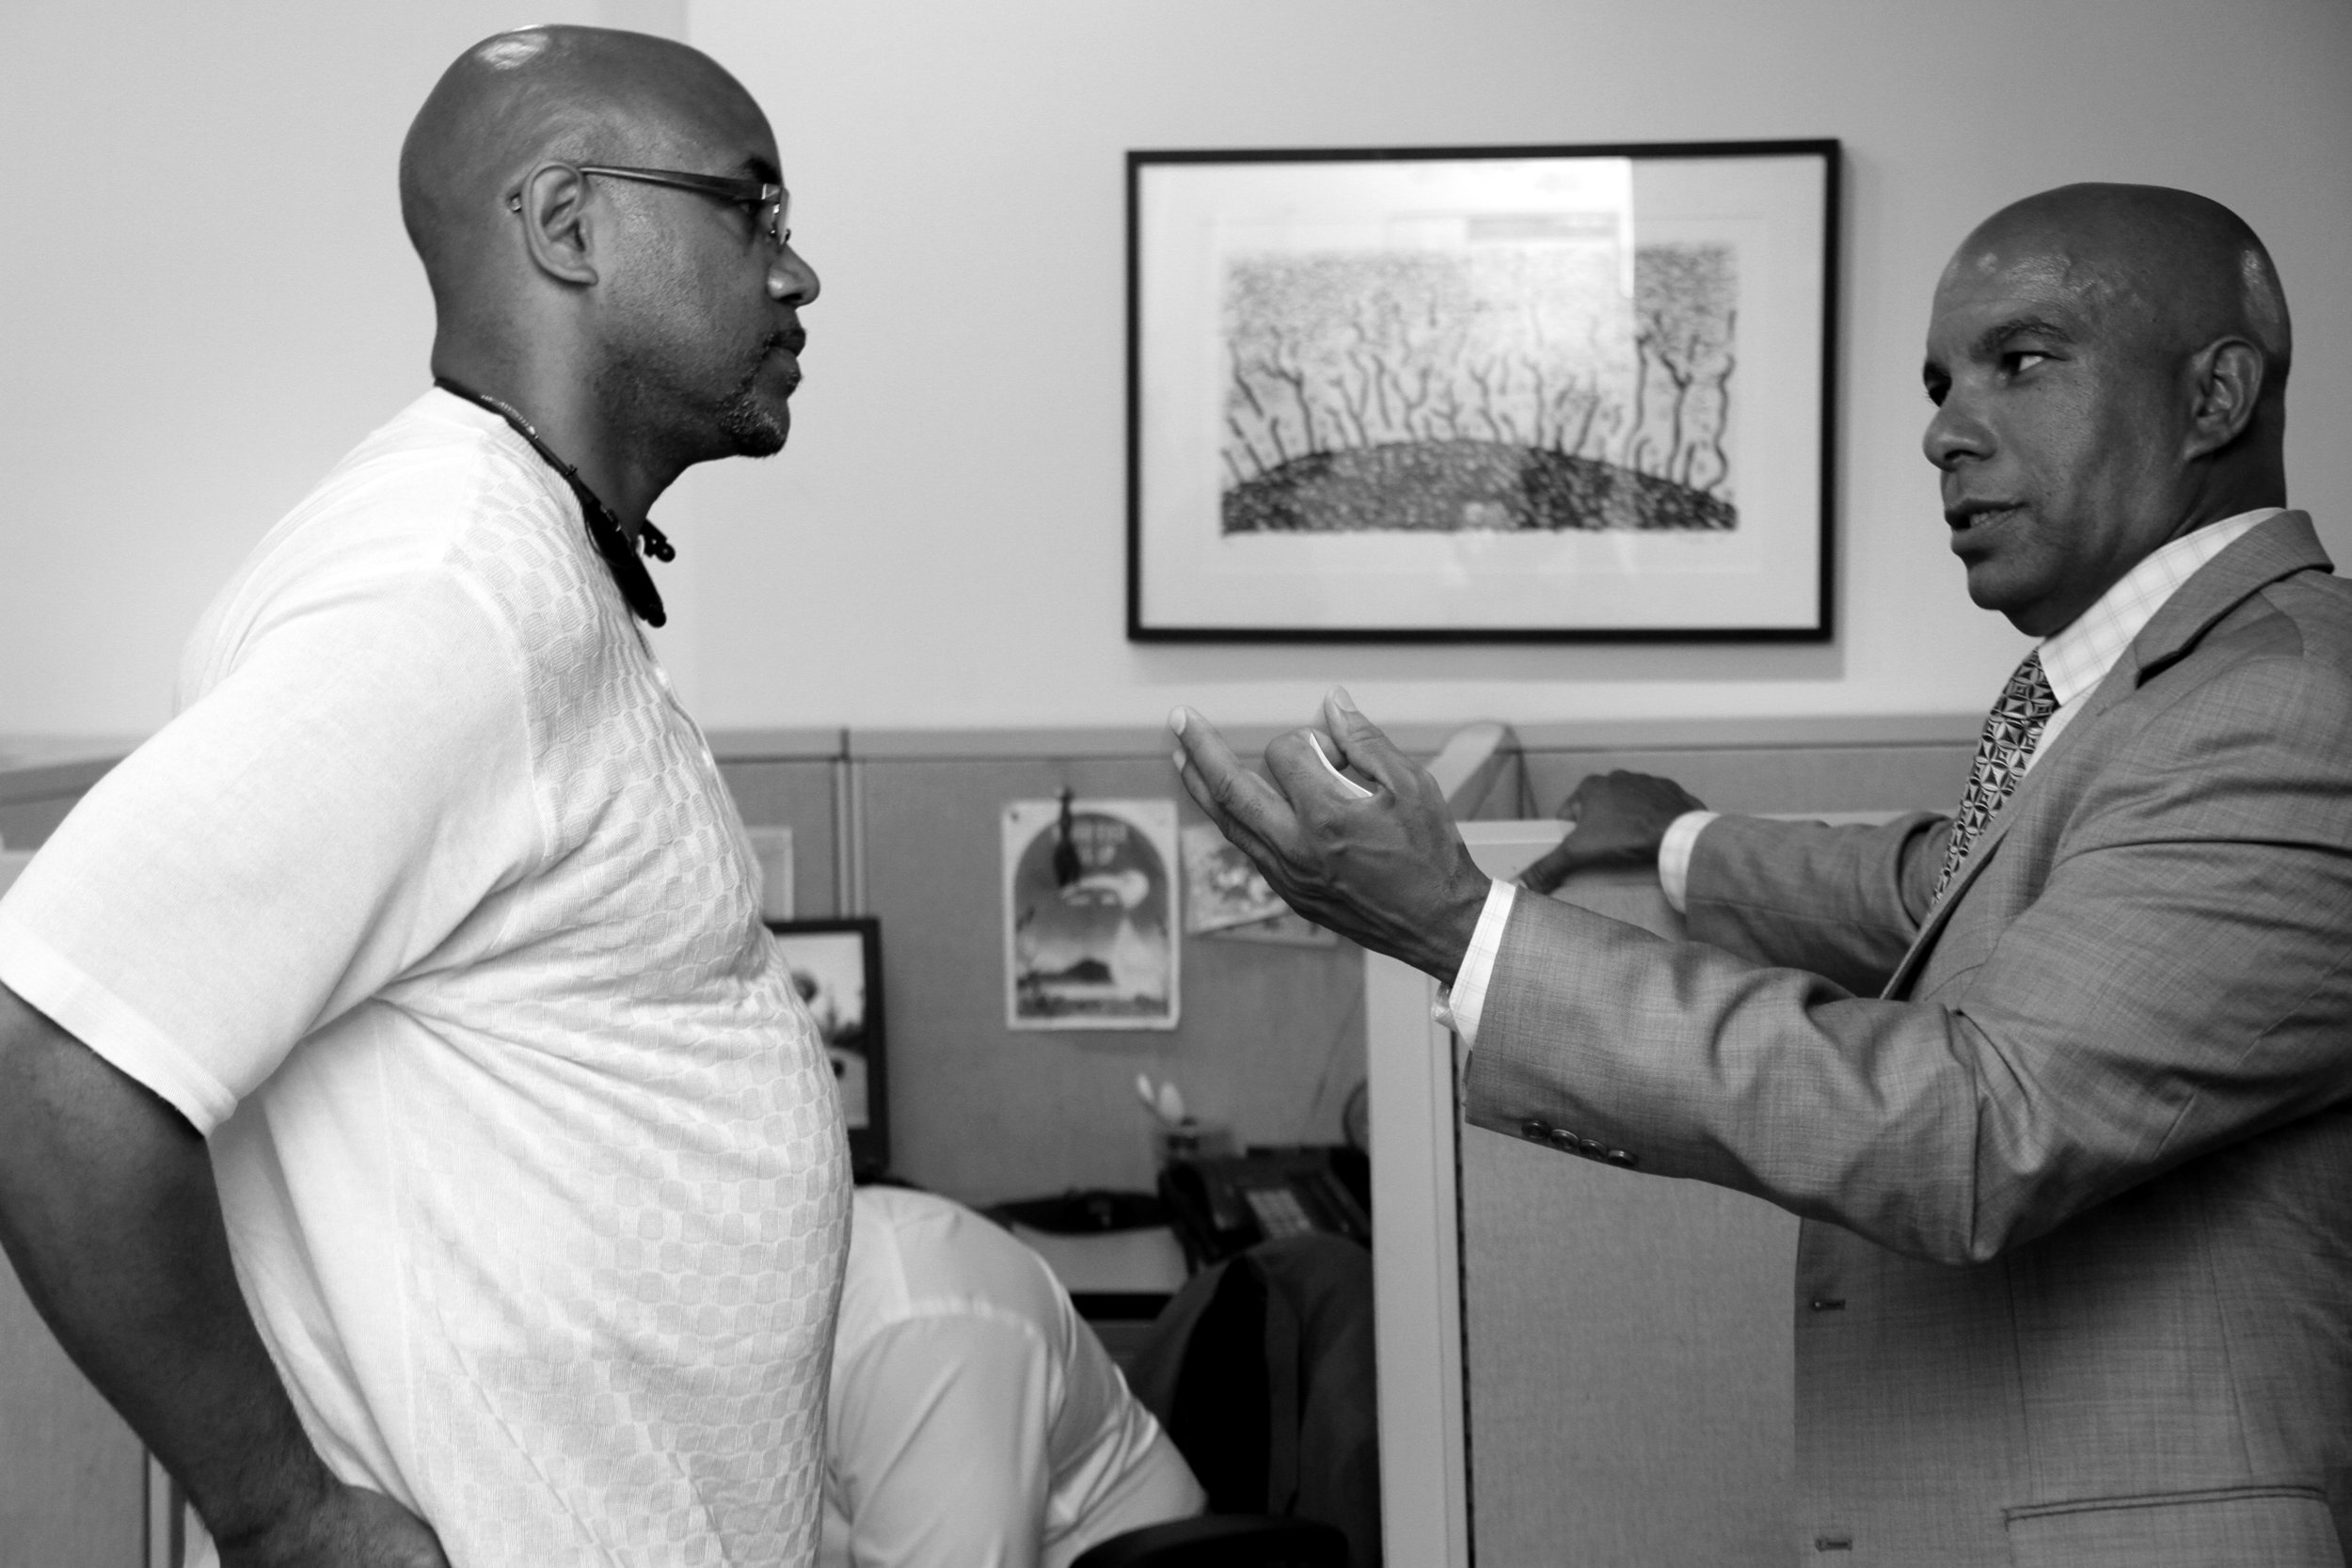 Julio Medina, our Executive Director, is pictured speaking with a close friend and community partner in our East Harlem office.